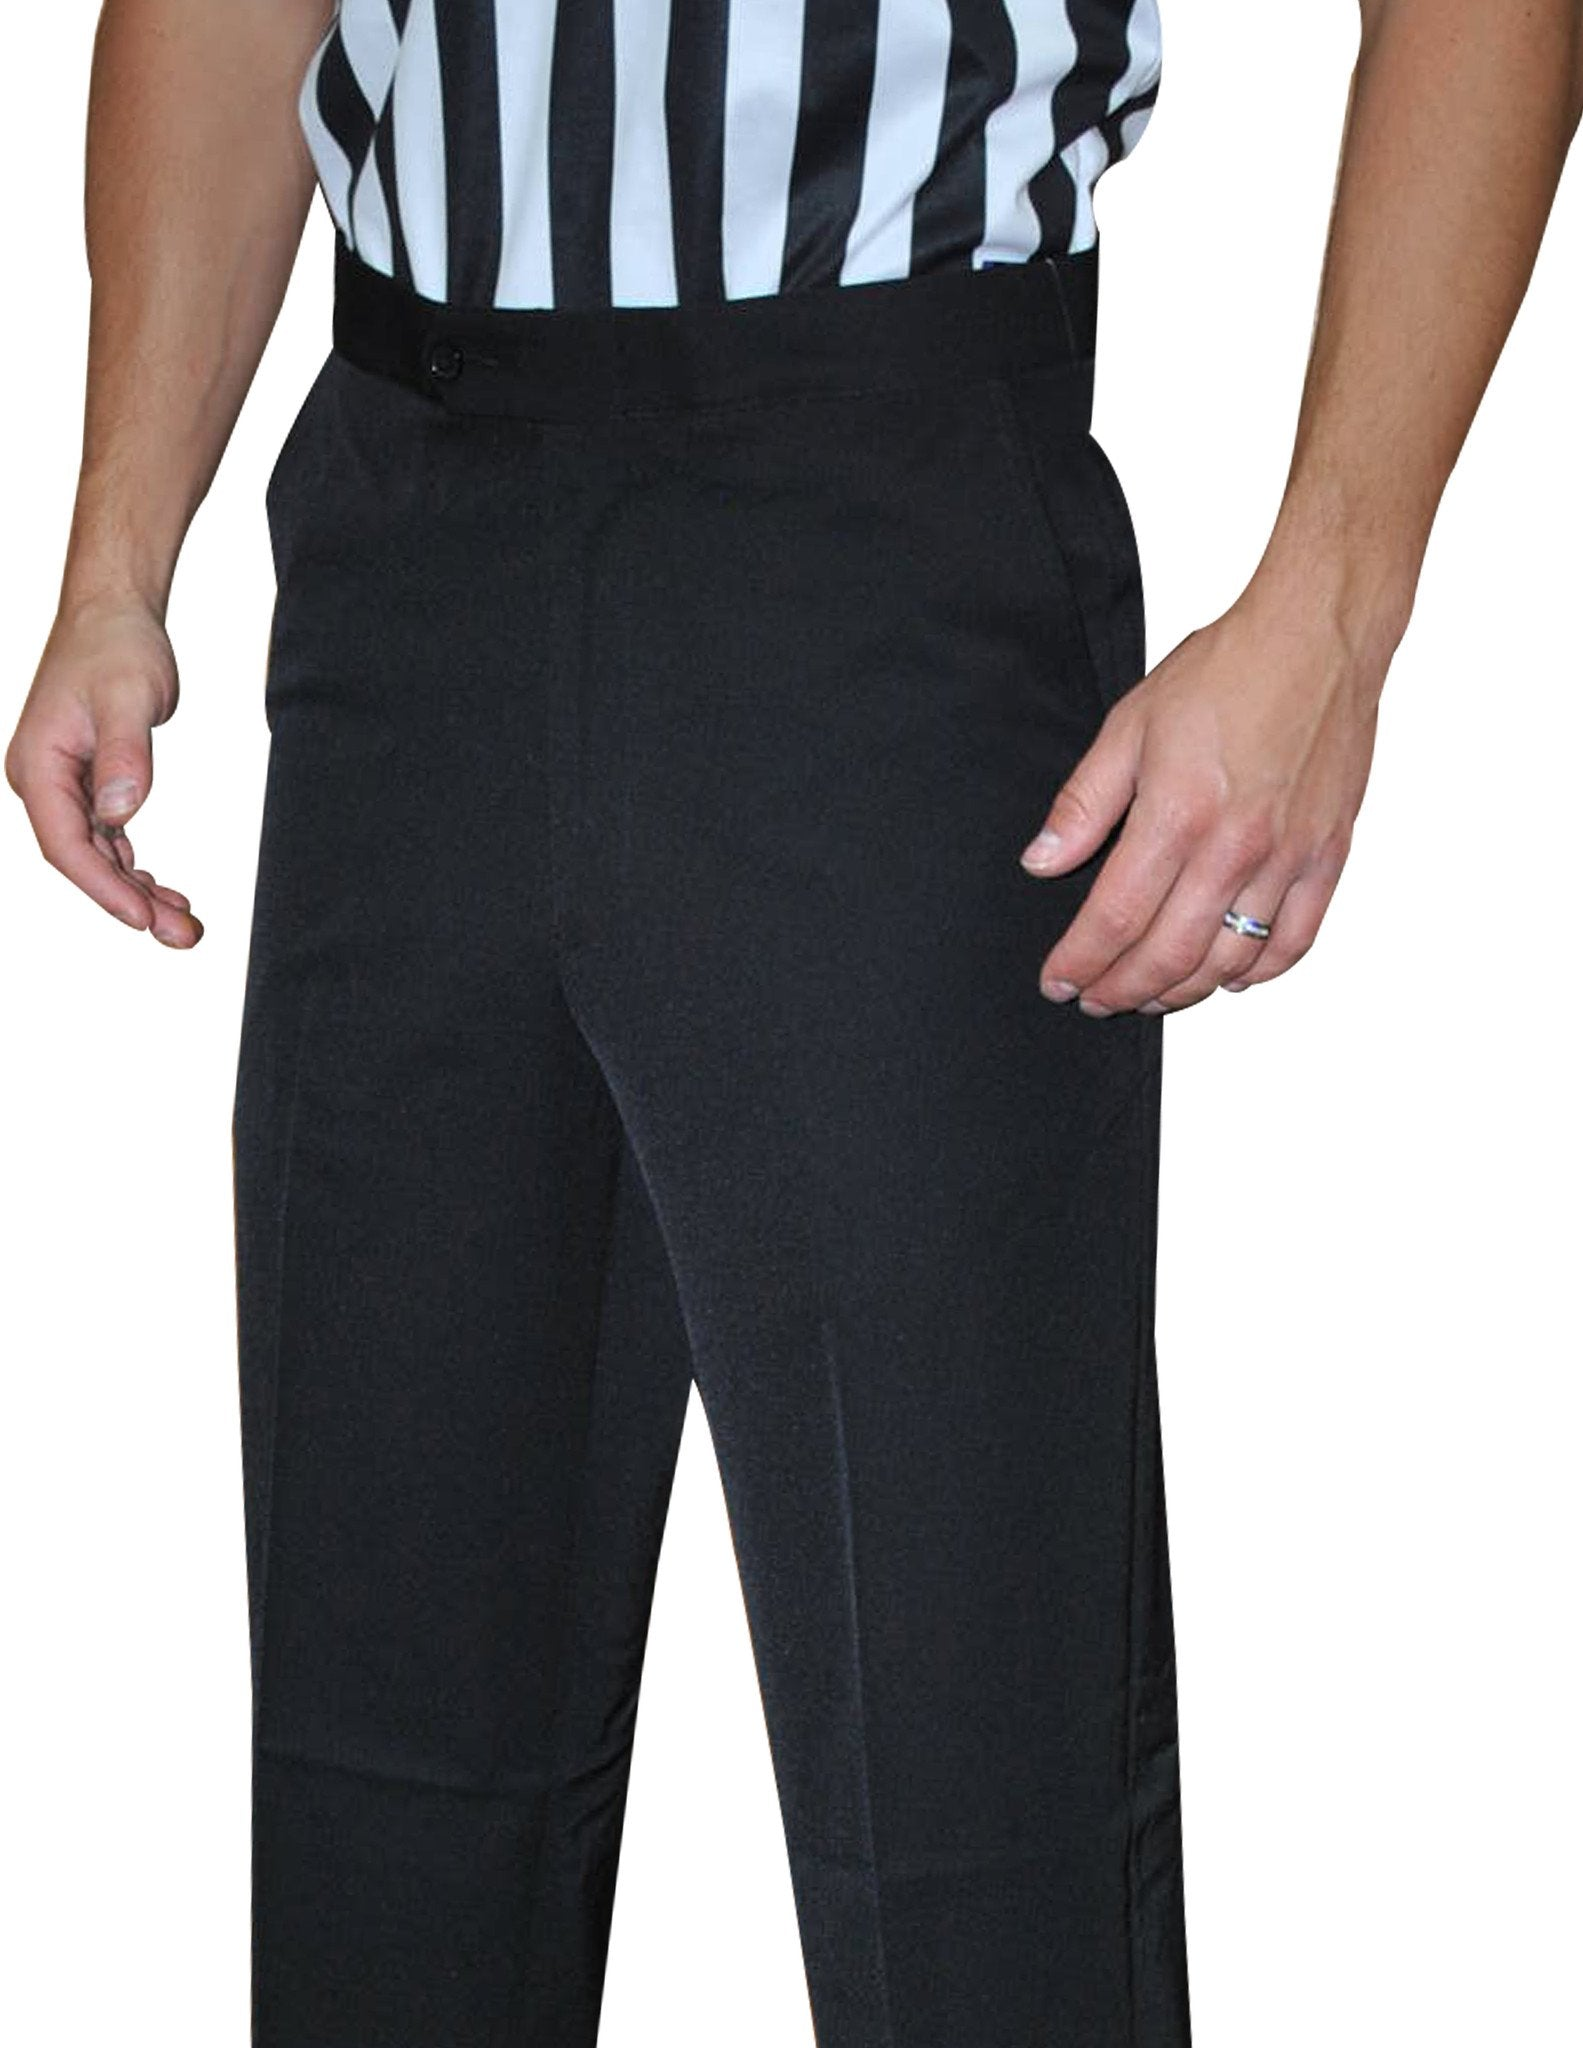 BKS287-Smitty 4-Way Stretch Flat Front Pants w/ Slash Pockets